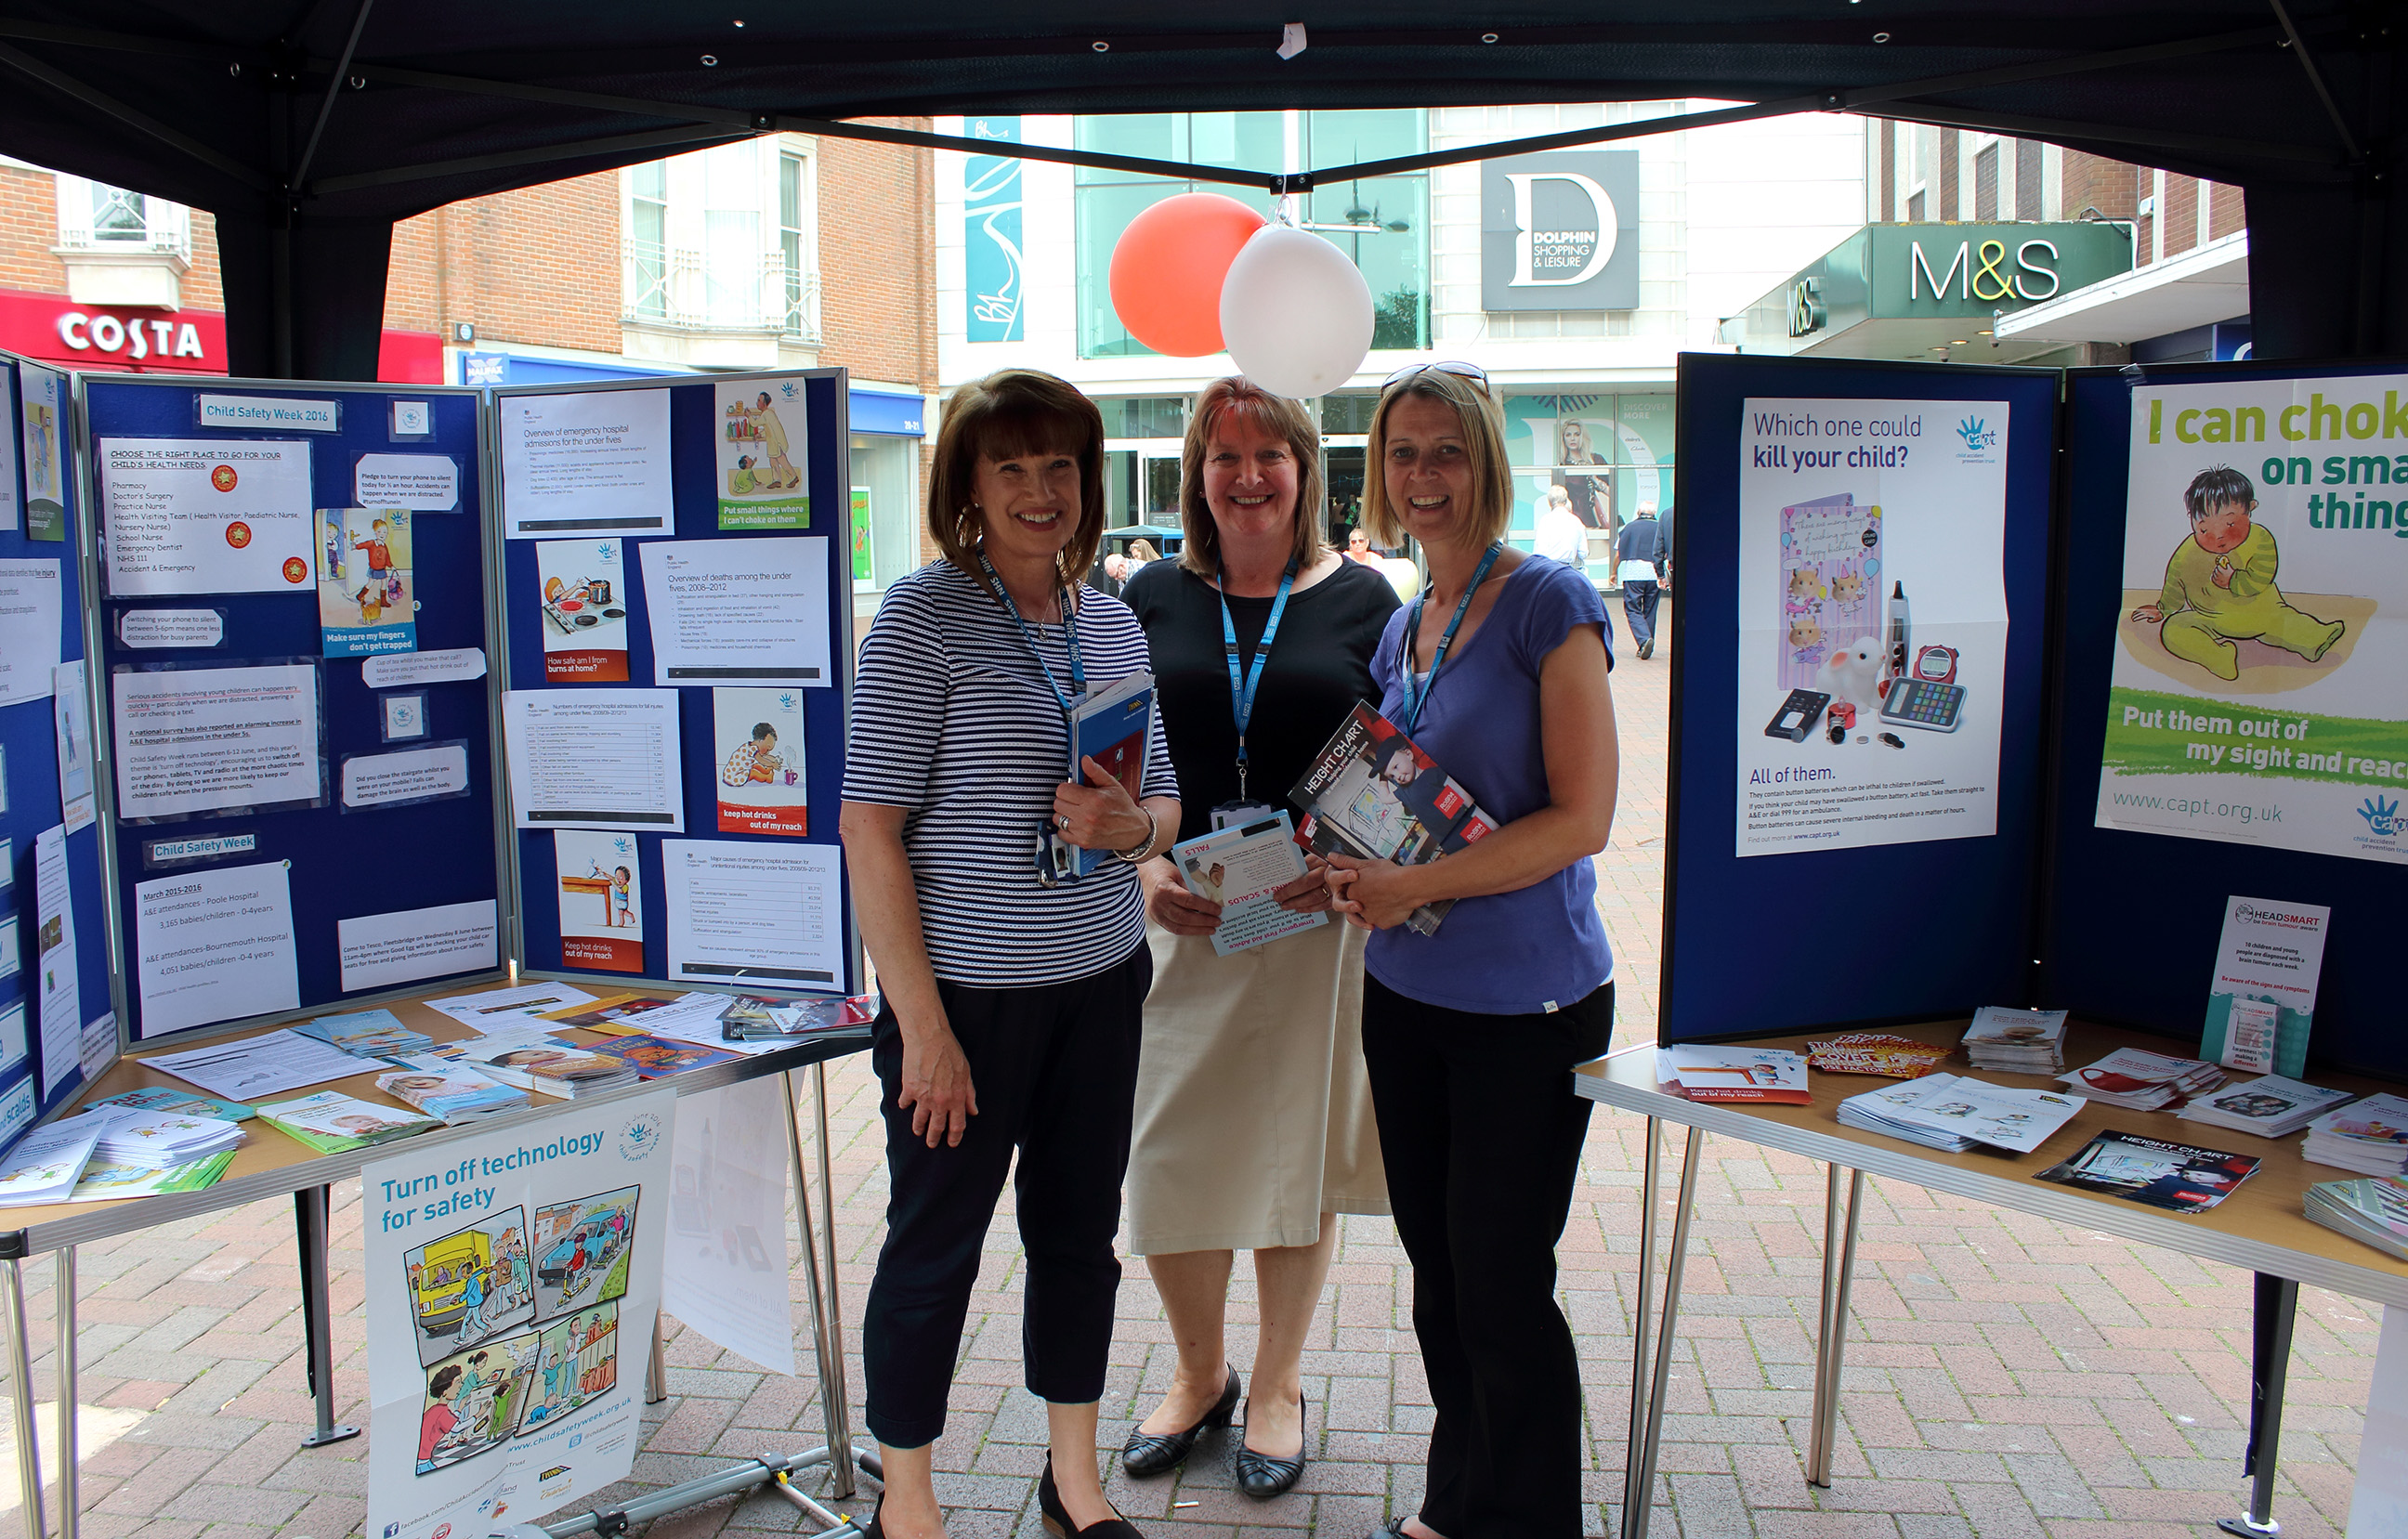 Dorset HealthCare takes to the streets of Poole to promote child safety